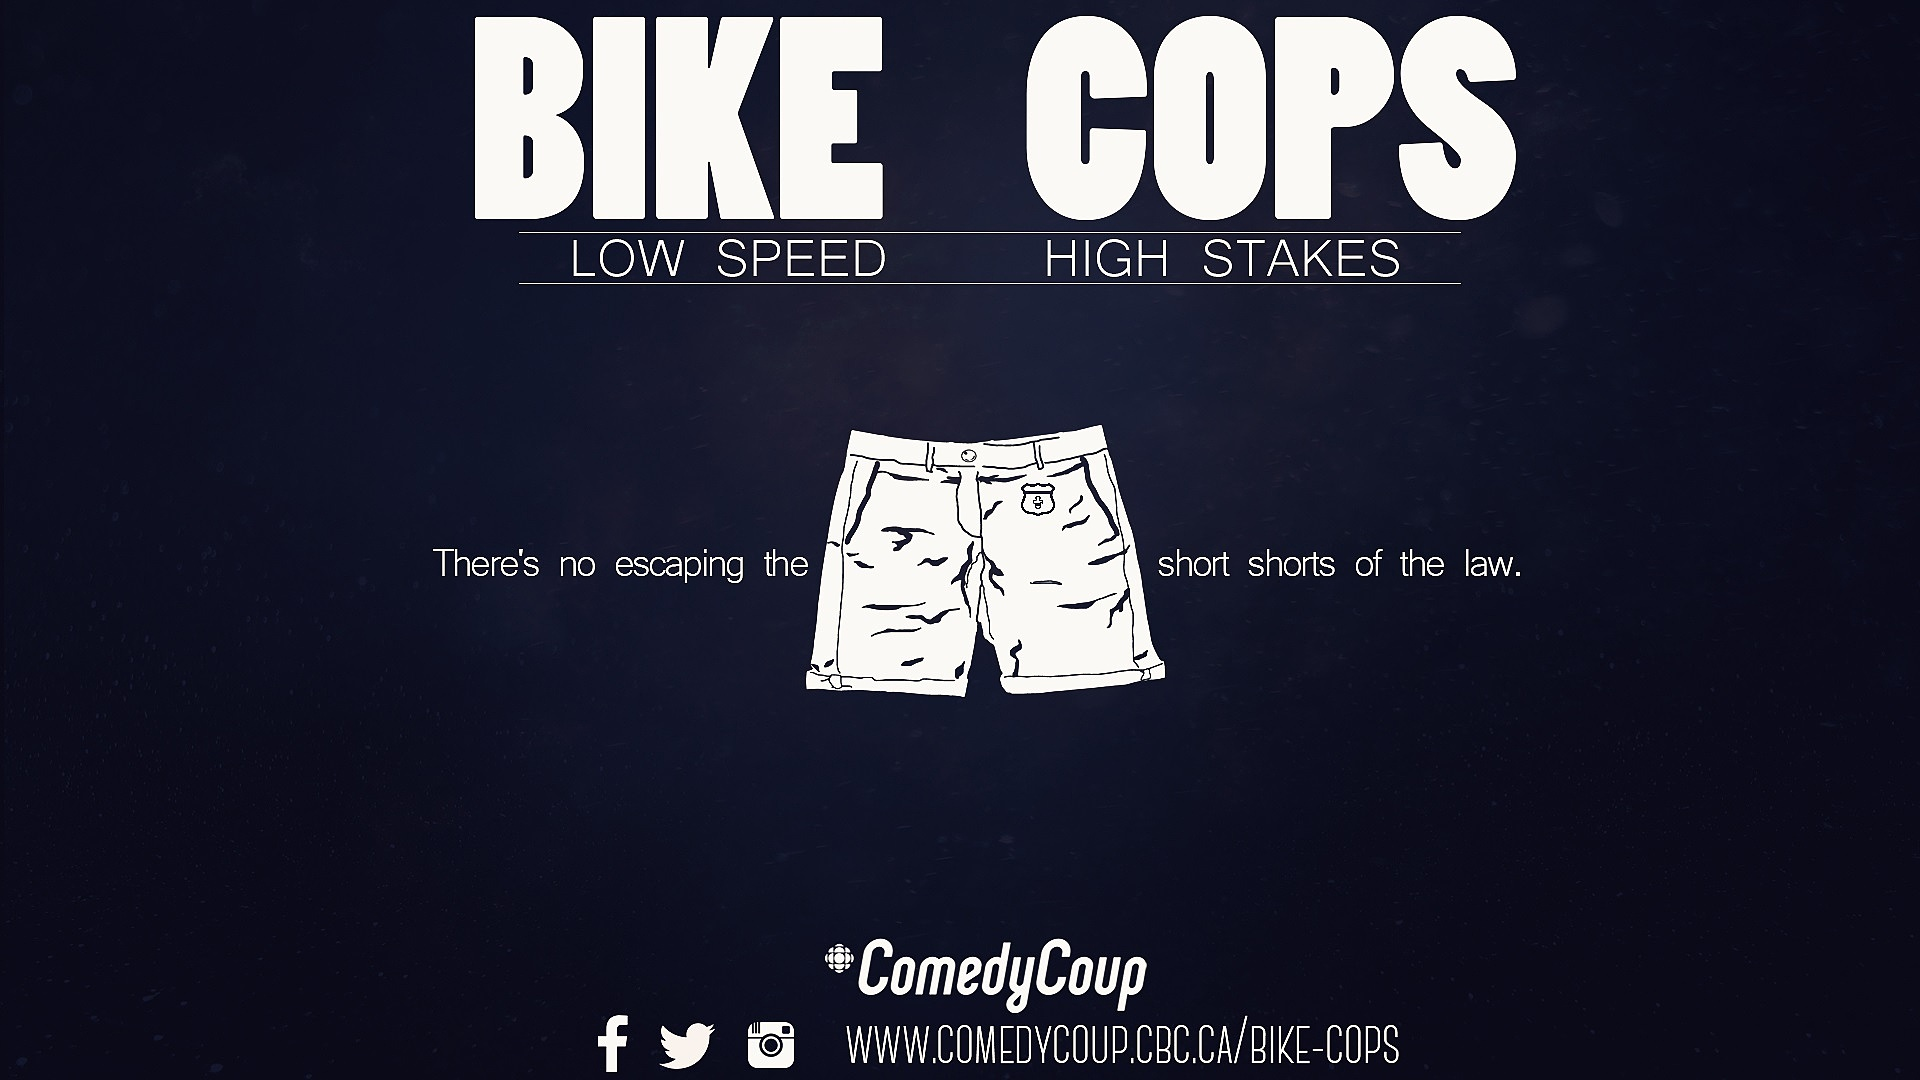 Week 4 Key It: Poster B Bike Cops